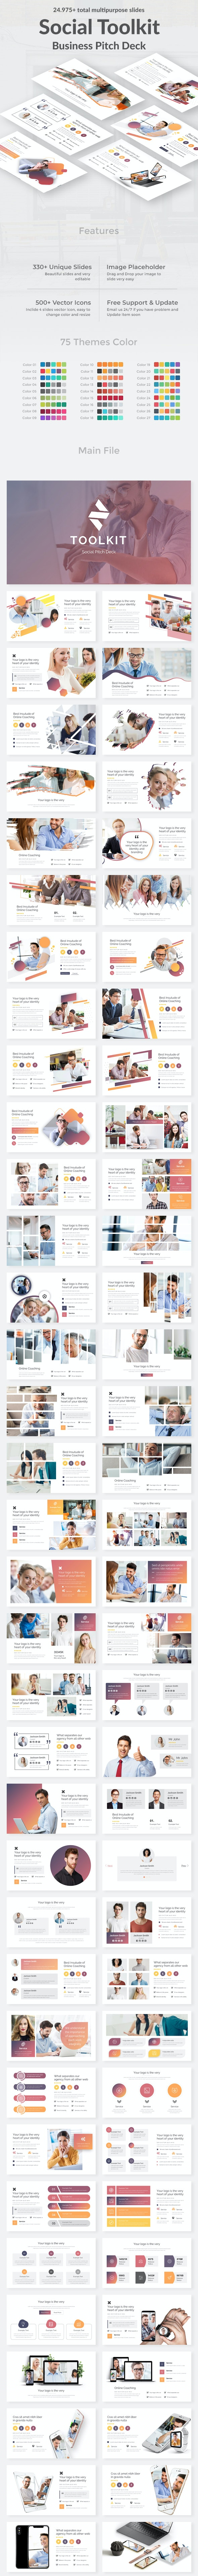 Social Toolkit Pitch Deck Powerpoint Template - Business PowerPoint Templates